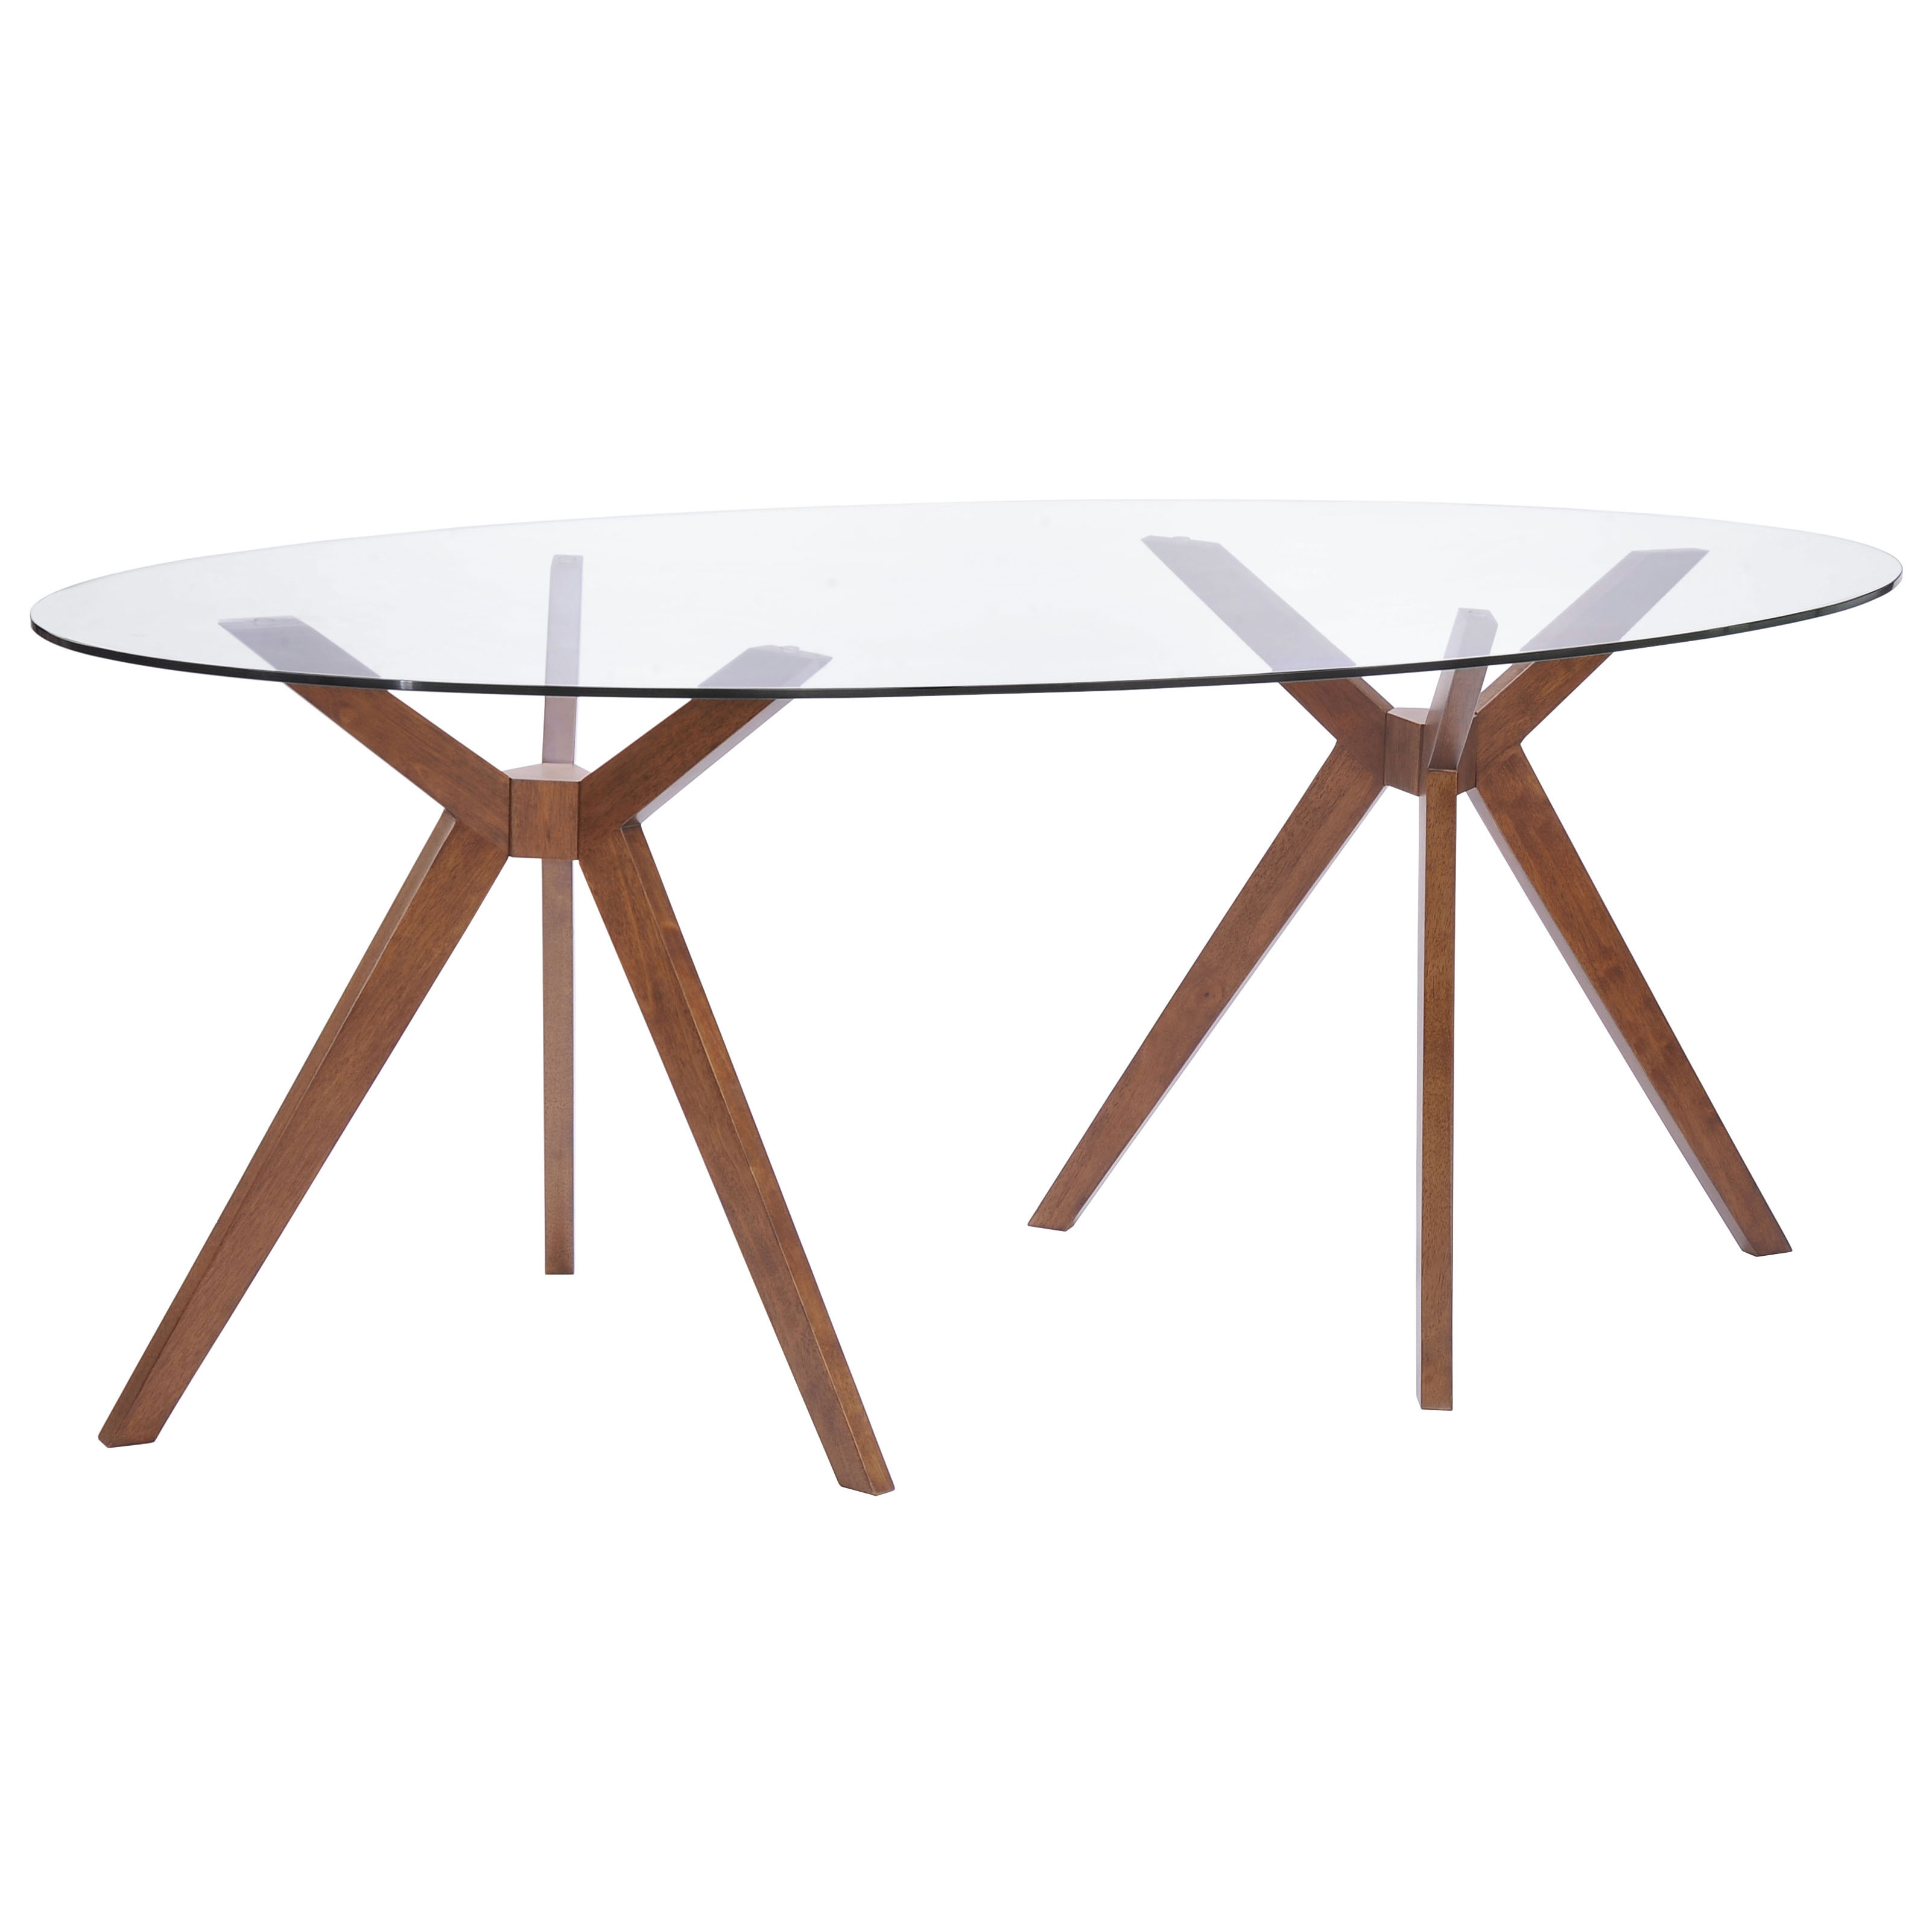 barclay oval dining table oval kitchen table Barclay Modern Oval Dining Table